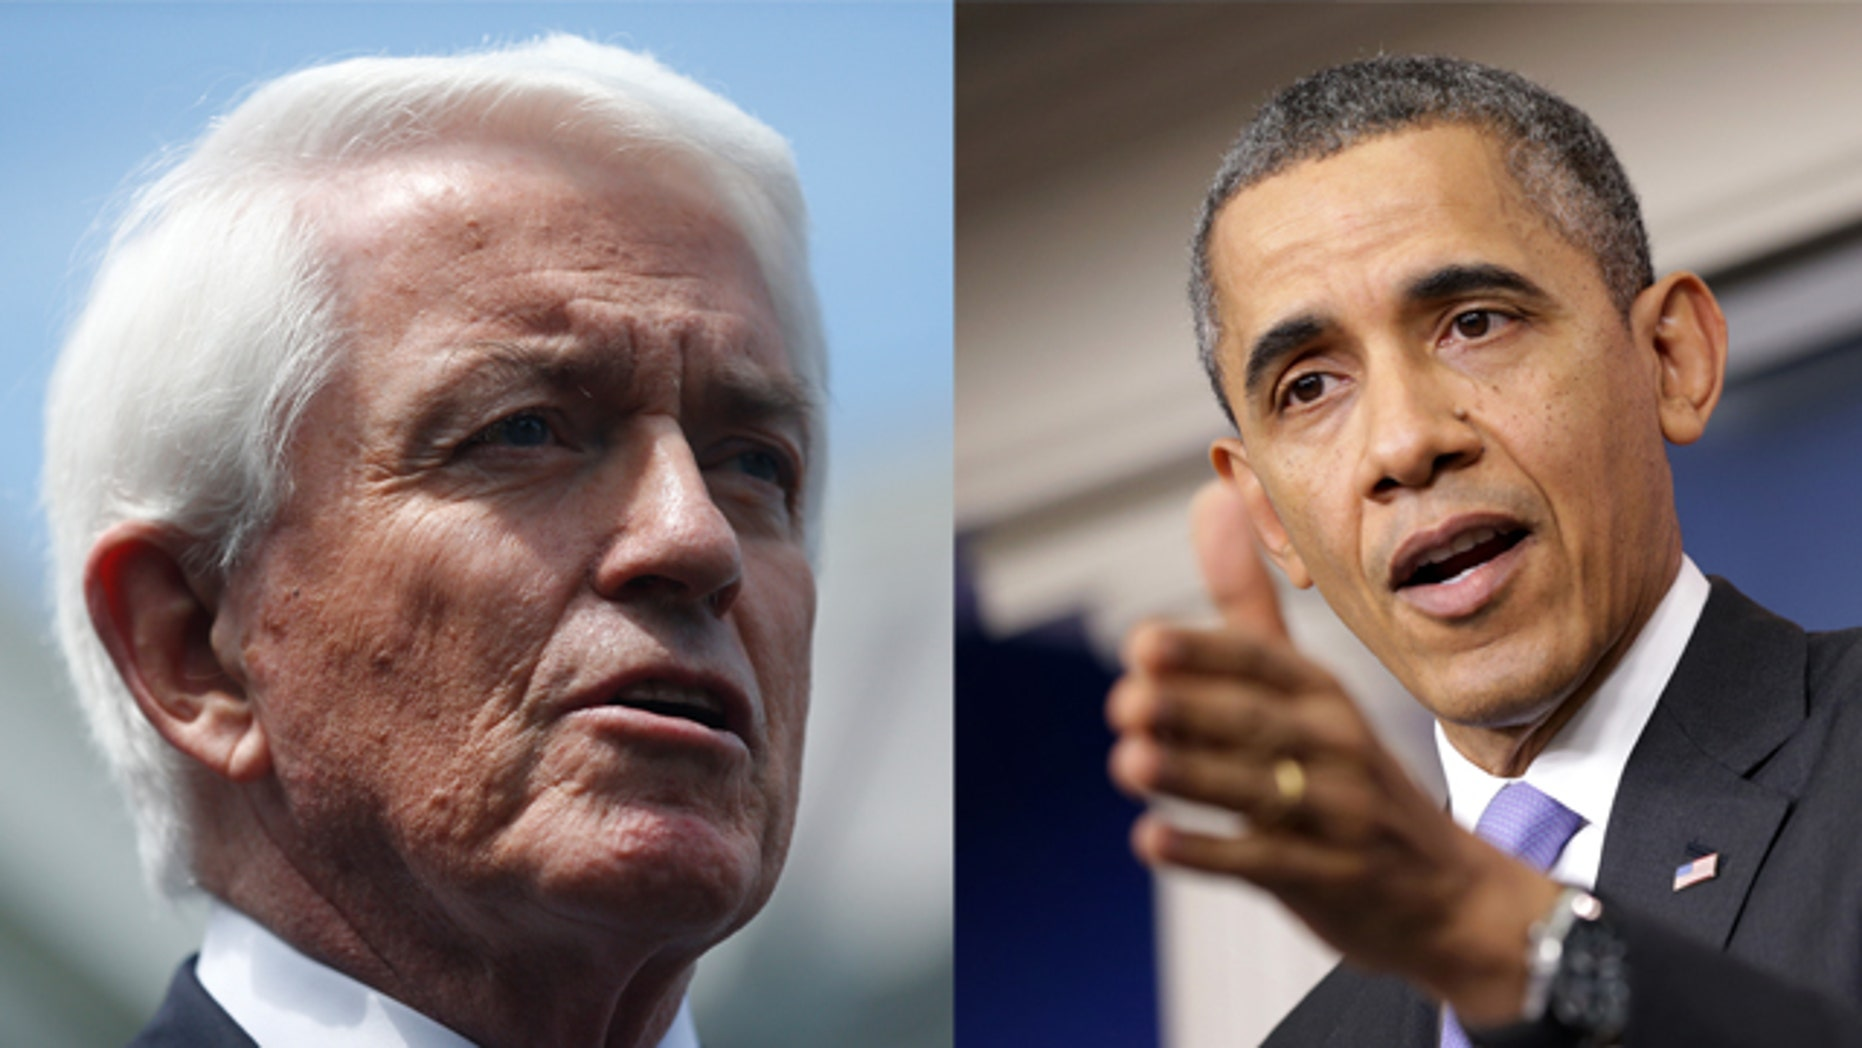 """(left) In this June 11, 2013 file photo, US Chamber of Commerce President Tom Donohue speaks to reporters outside the White House in Washington. Donohue says the nation's biggest business lobby intends to """"pull out all the stops"""" to pass an overhaul of immigration laws. (Right) President Barack Obama. (AP Photo/Charles Dharapak, File)"""